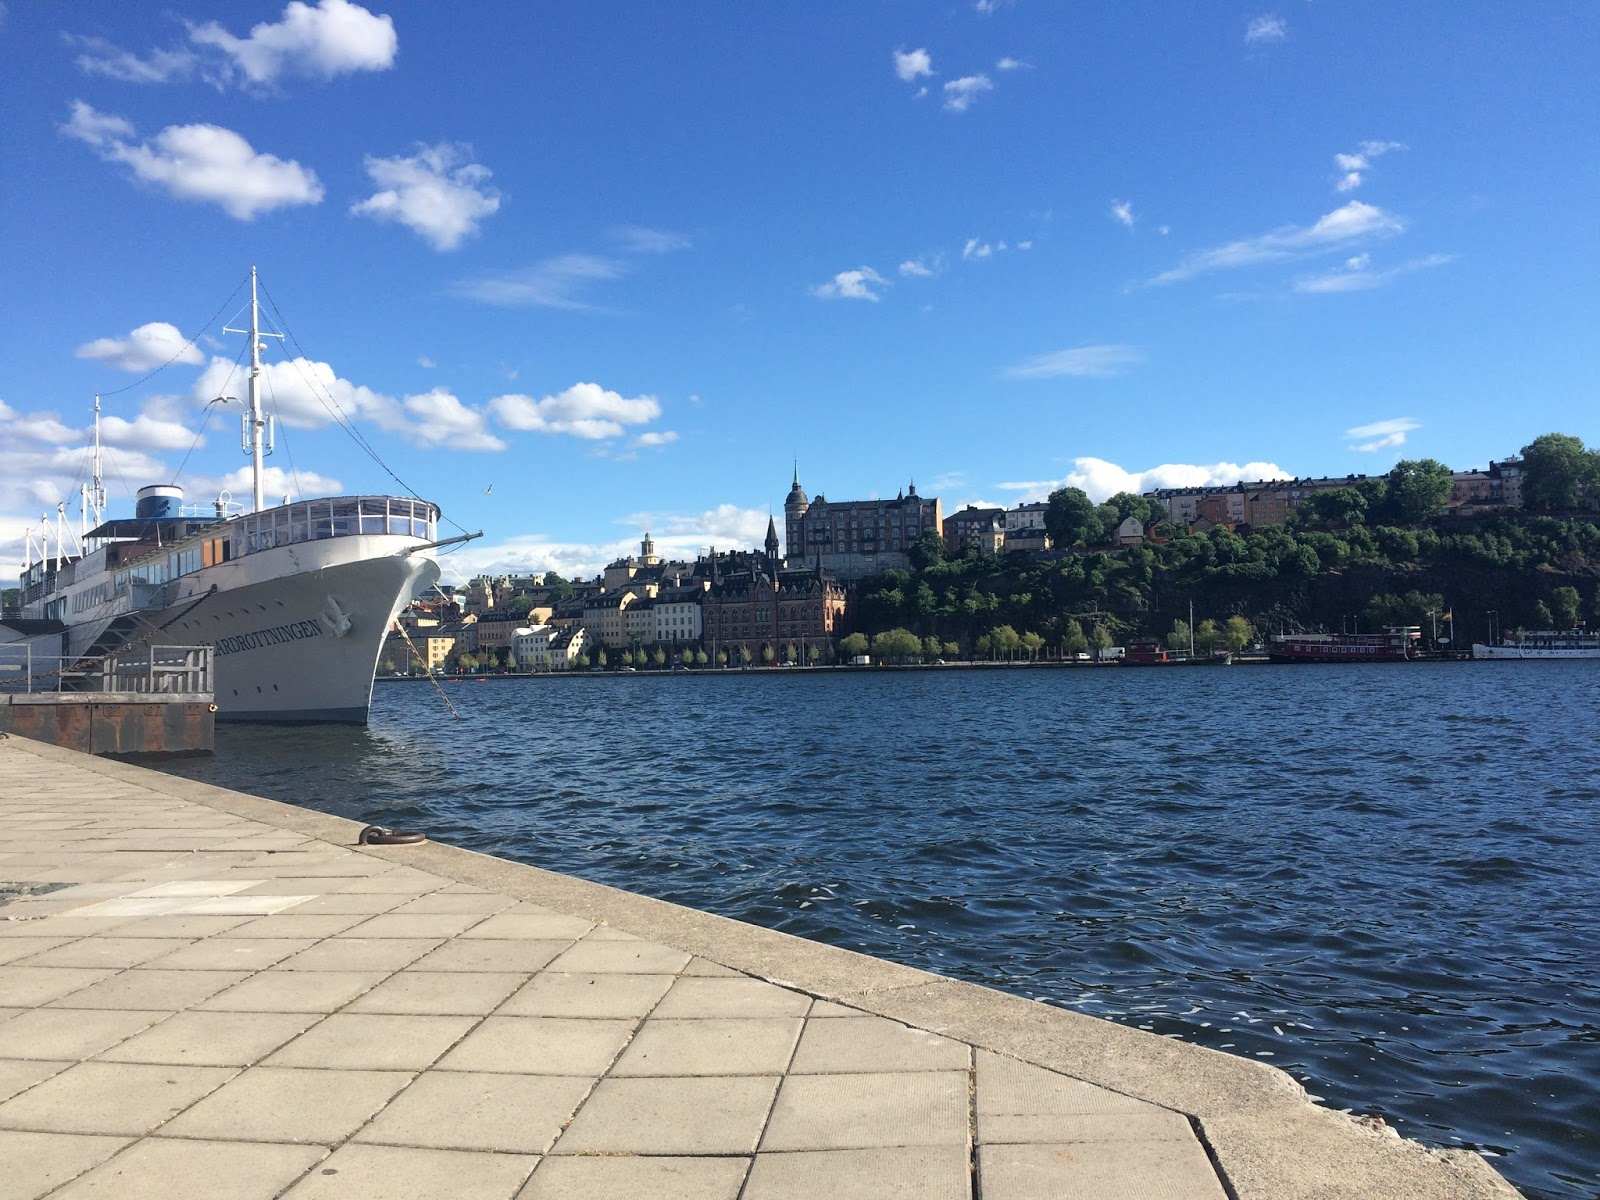 Picture of Riddarholmen in Stockholm